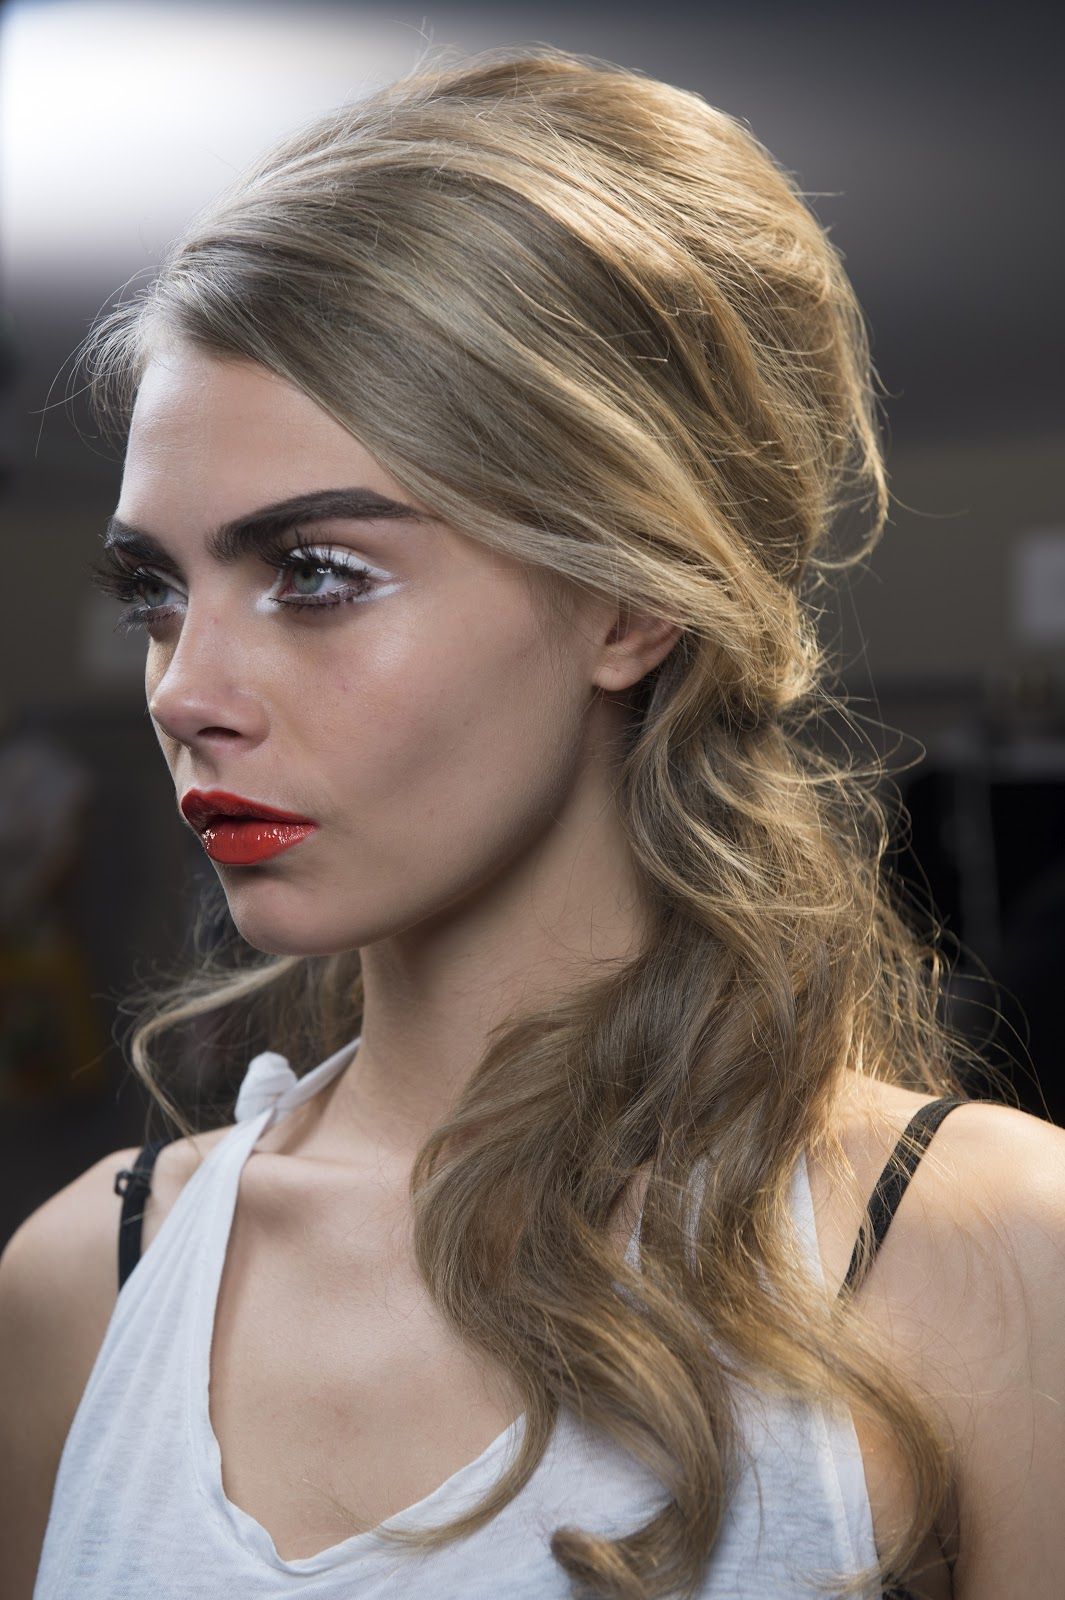 How to create Glamorous 60's style hair.